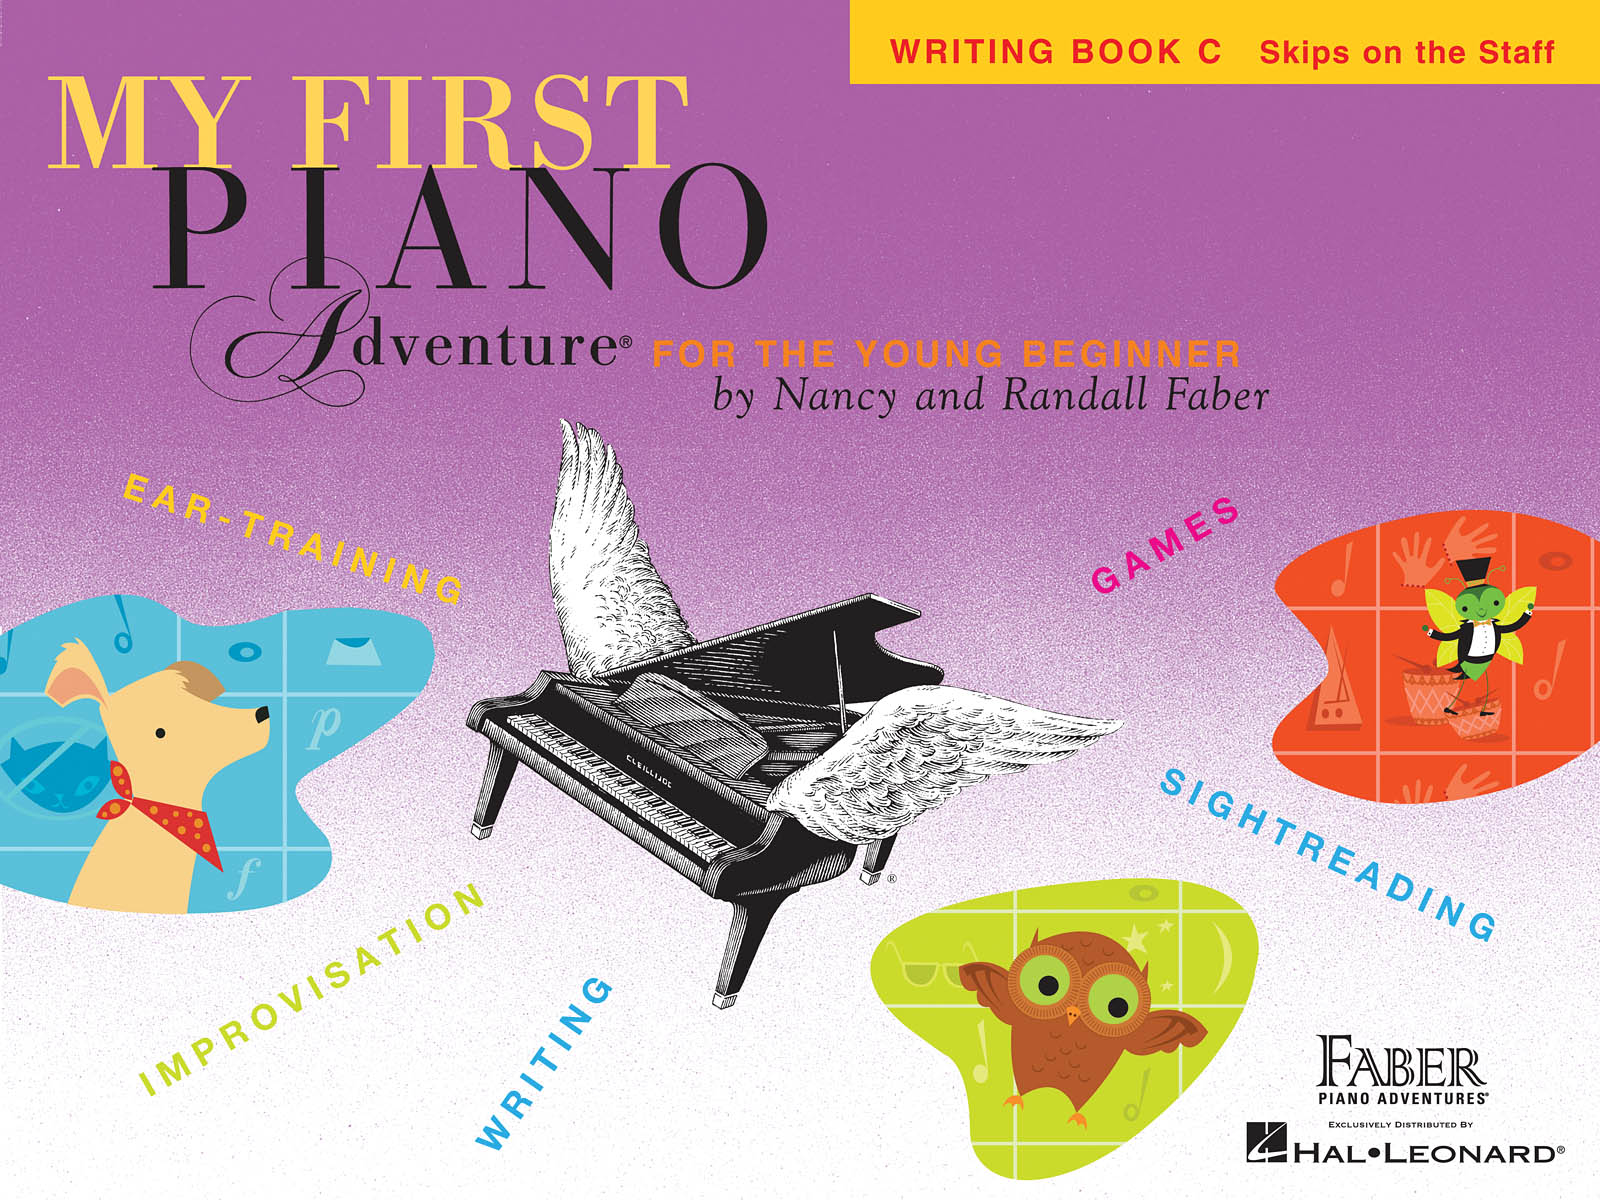 My First Piano Adventure Writing Book C, Skips on the Staff